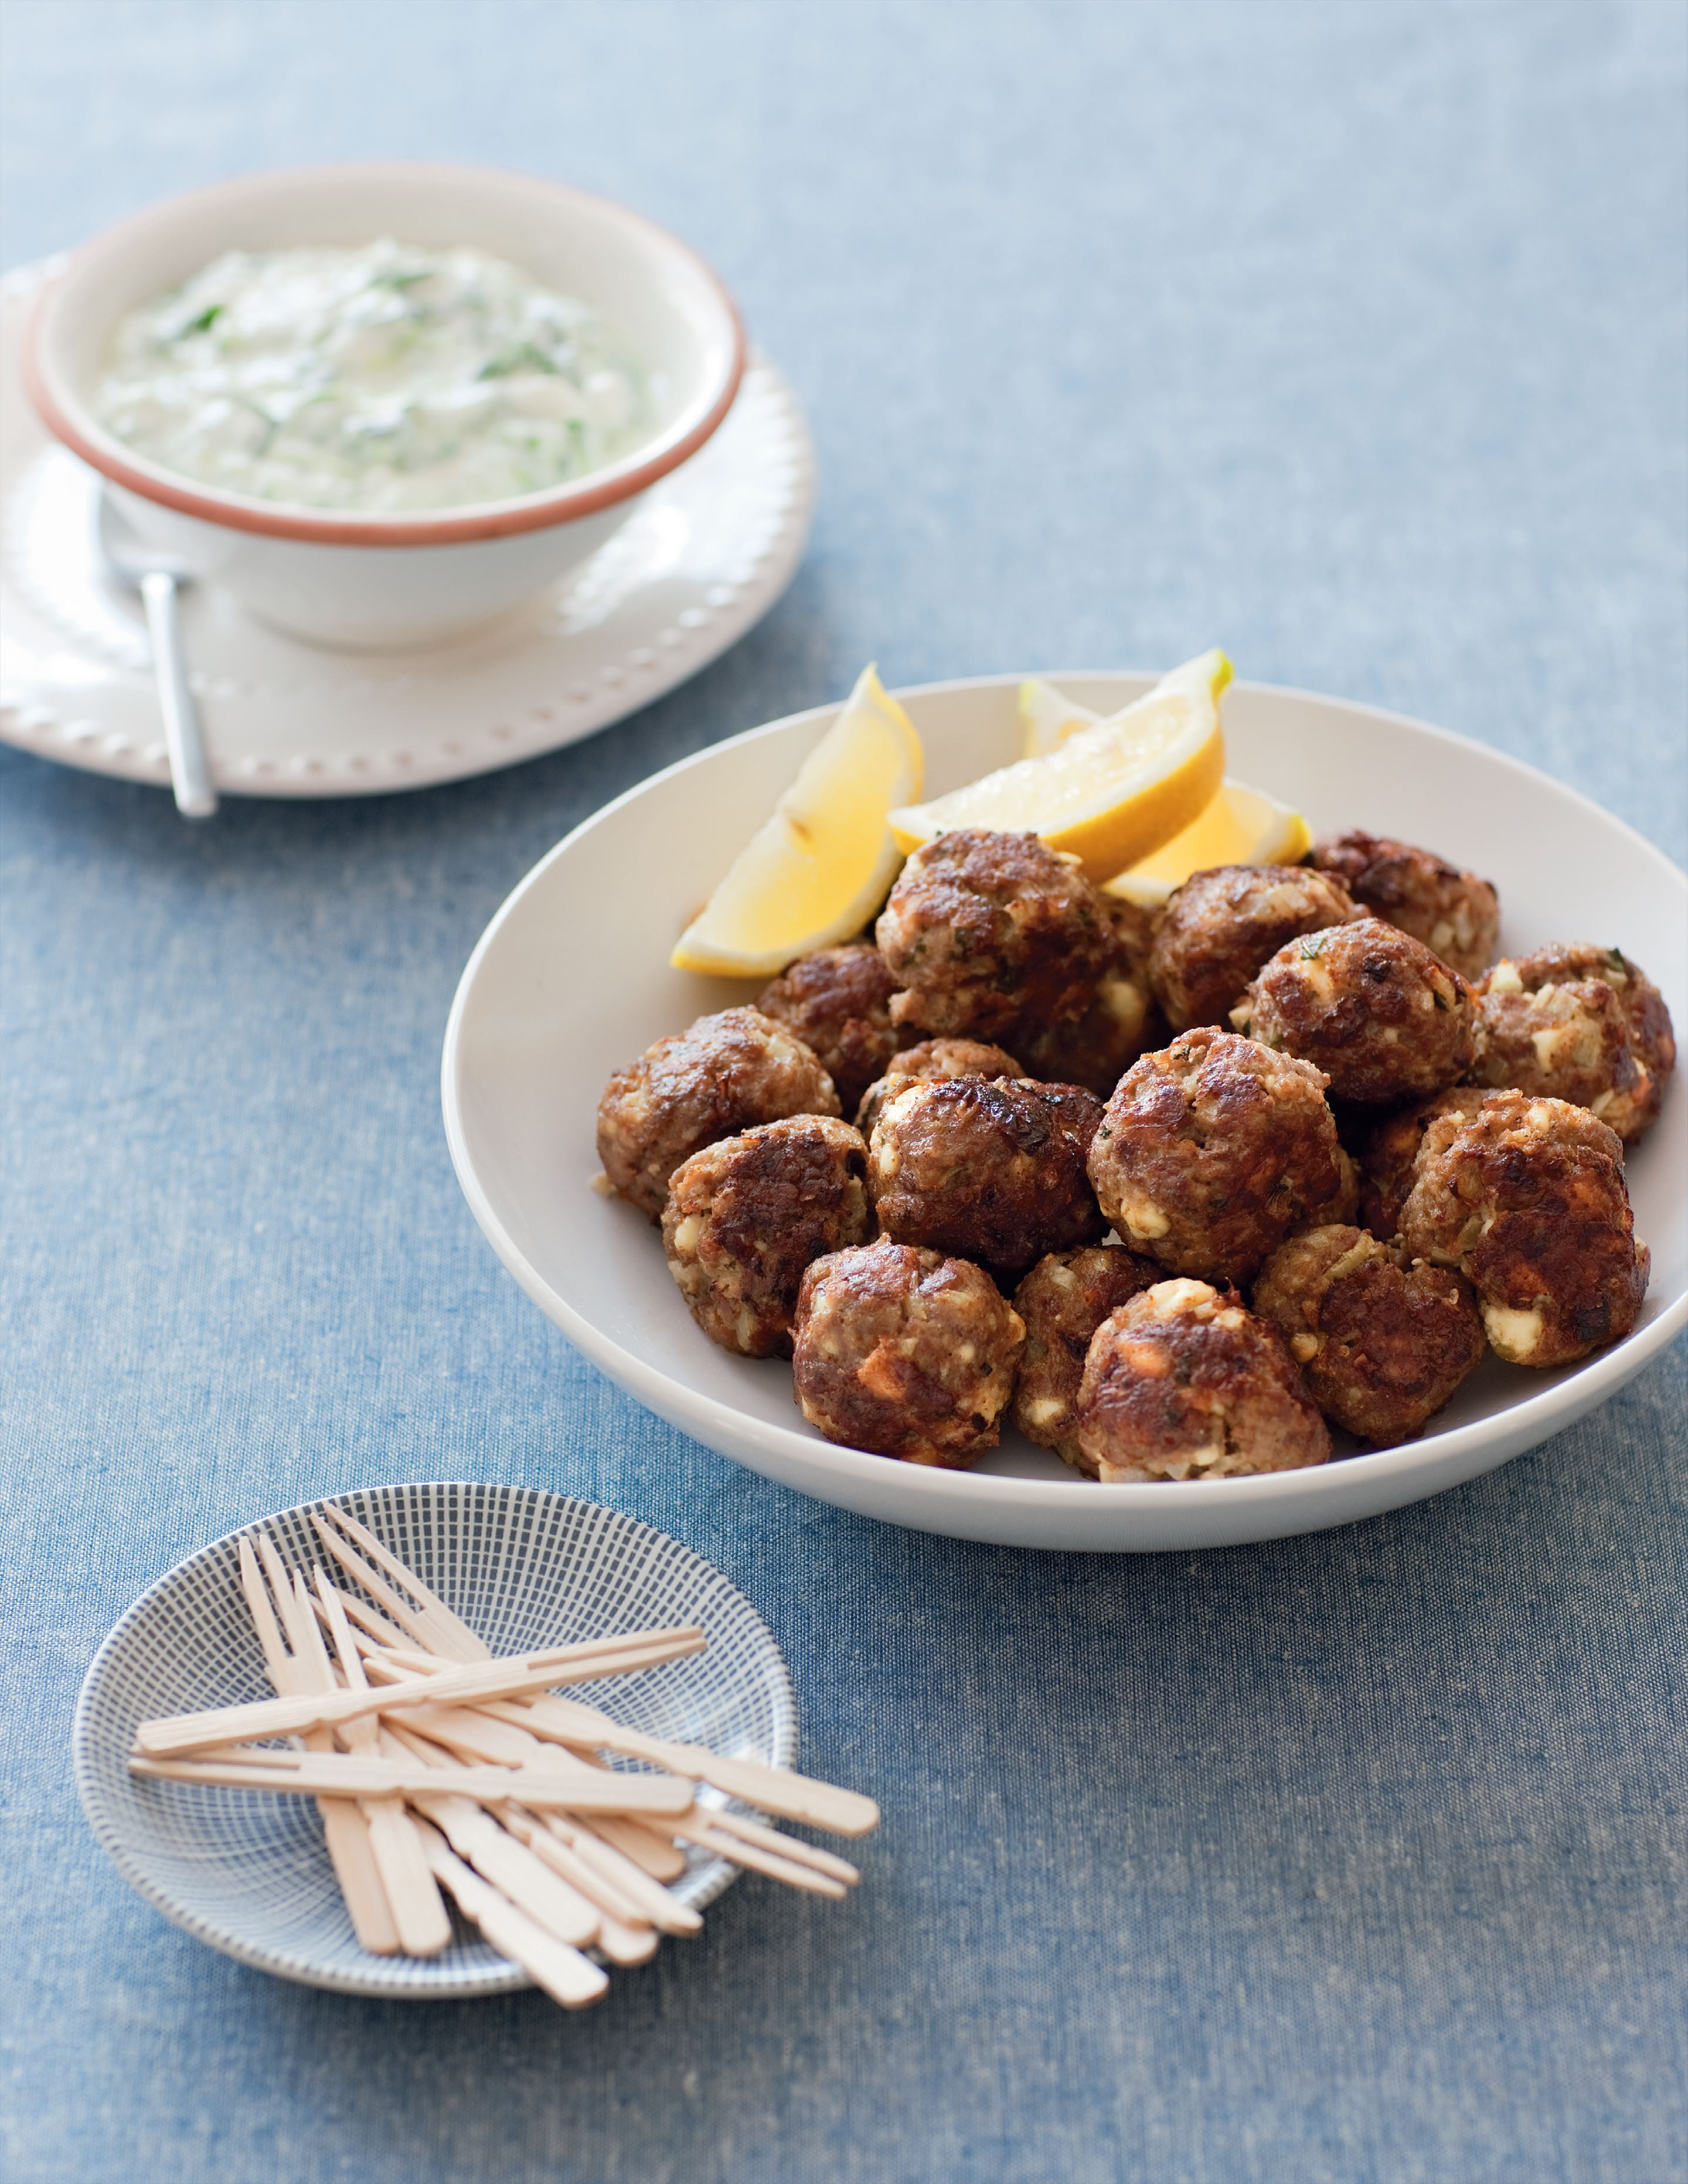 Greek lamb and feta meatballs